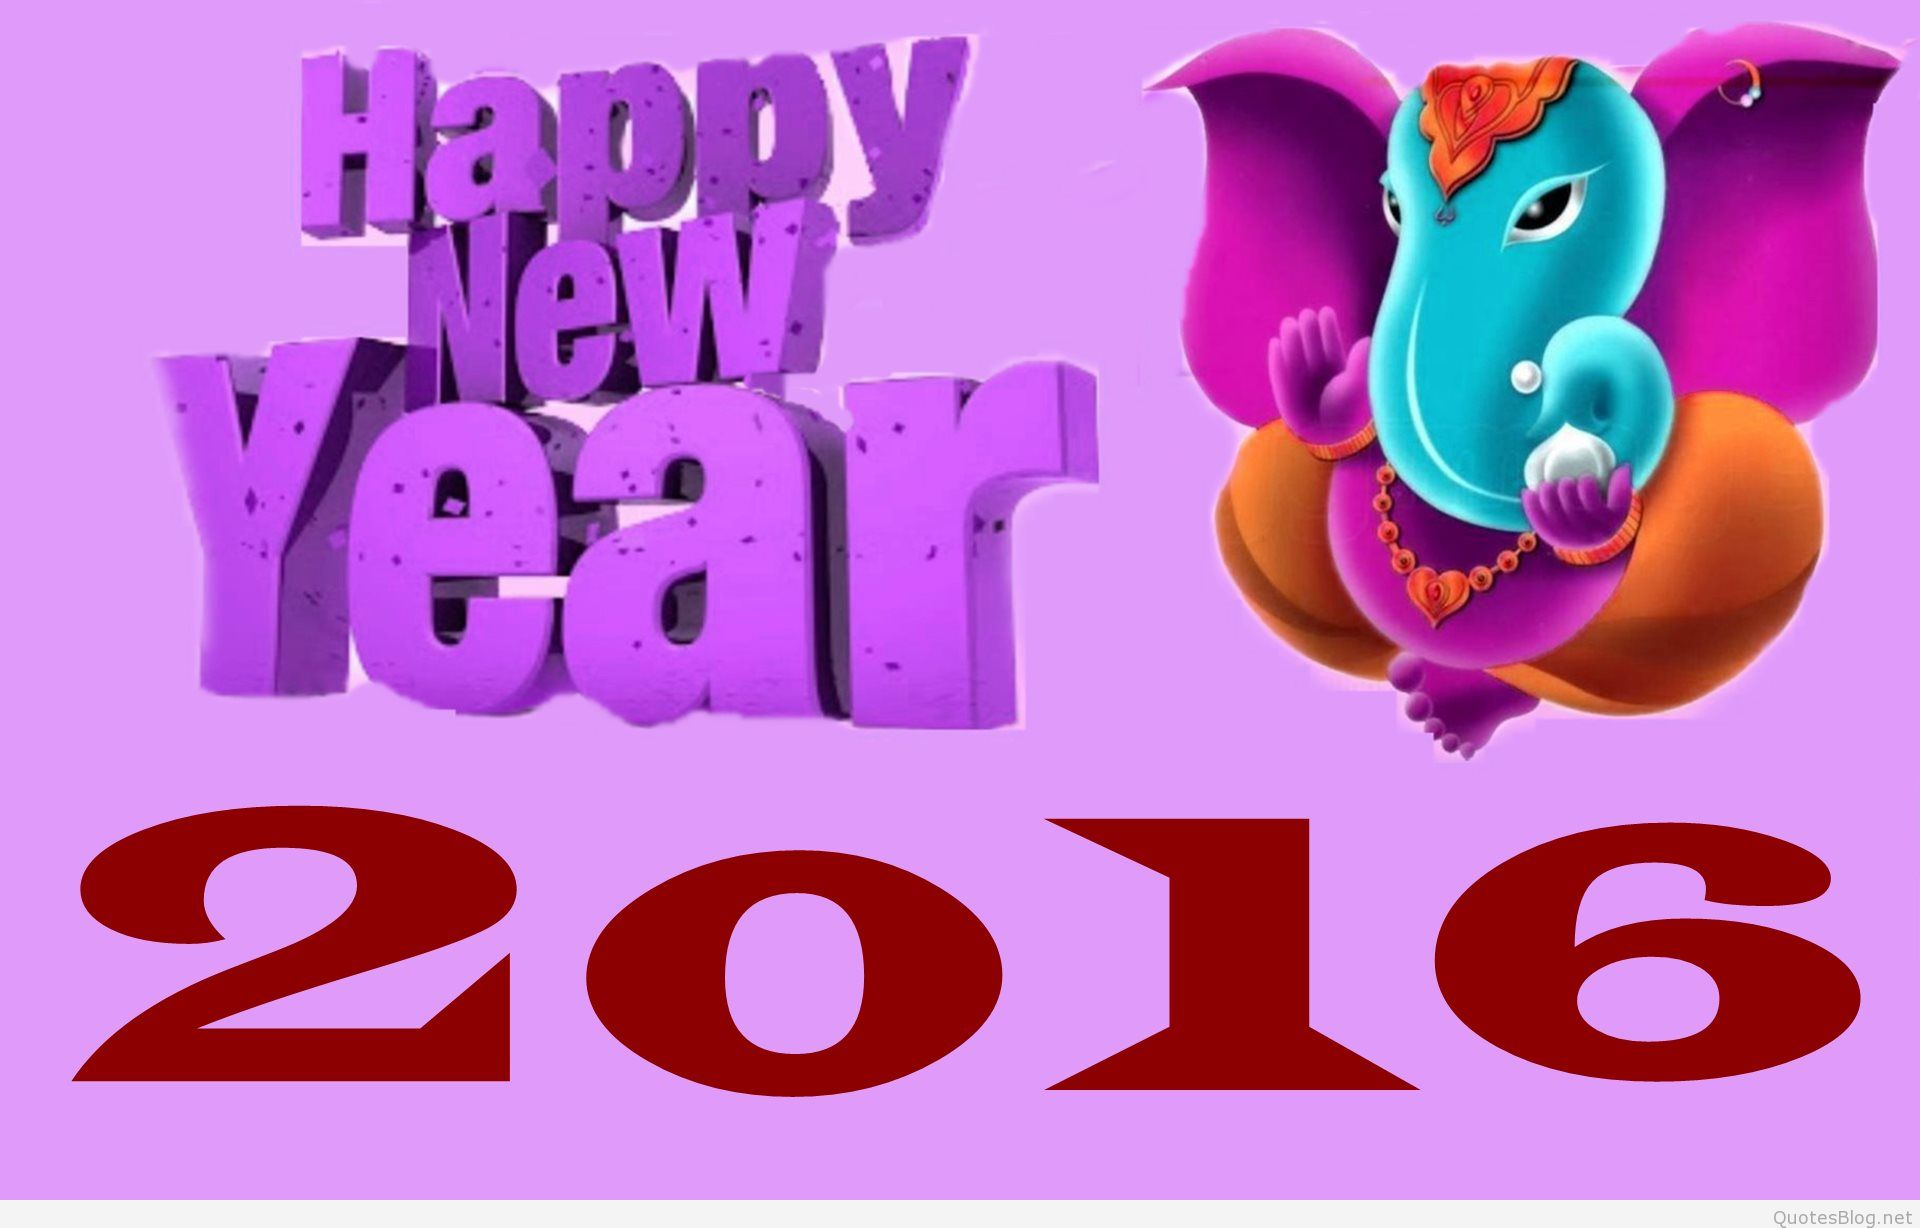 Happy new year sayings wallpapers 2016 2017 1920x1228